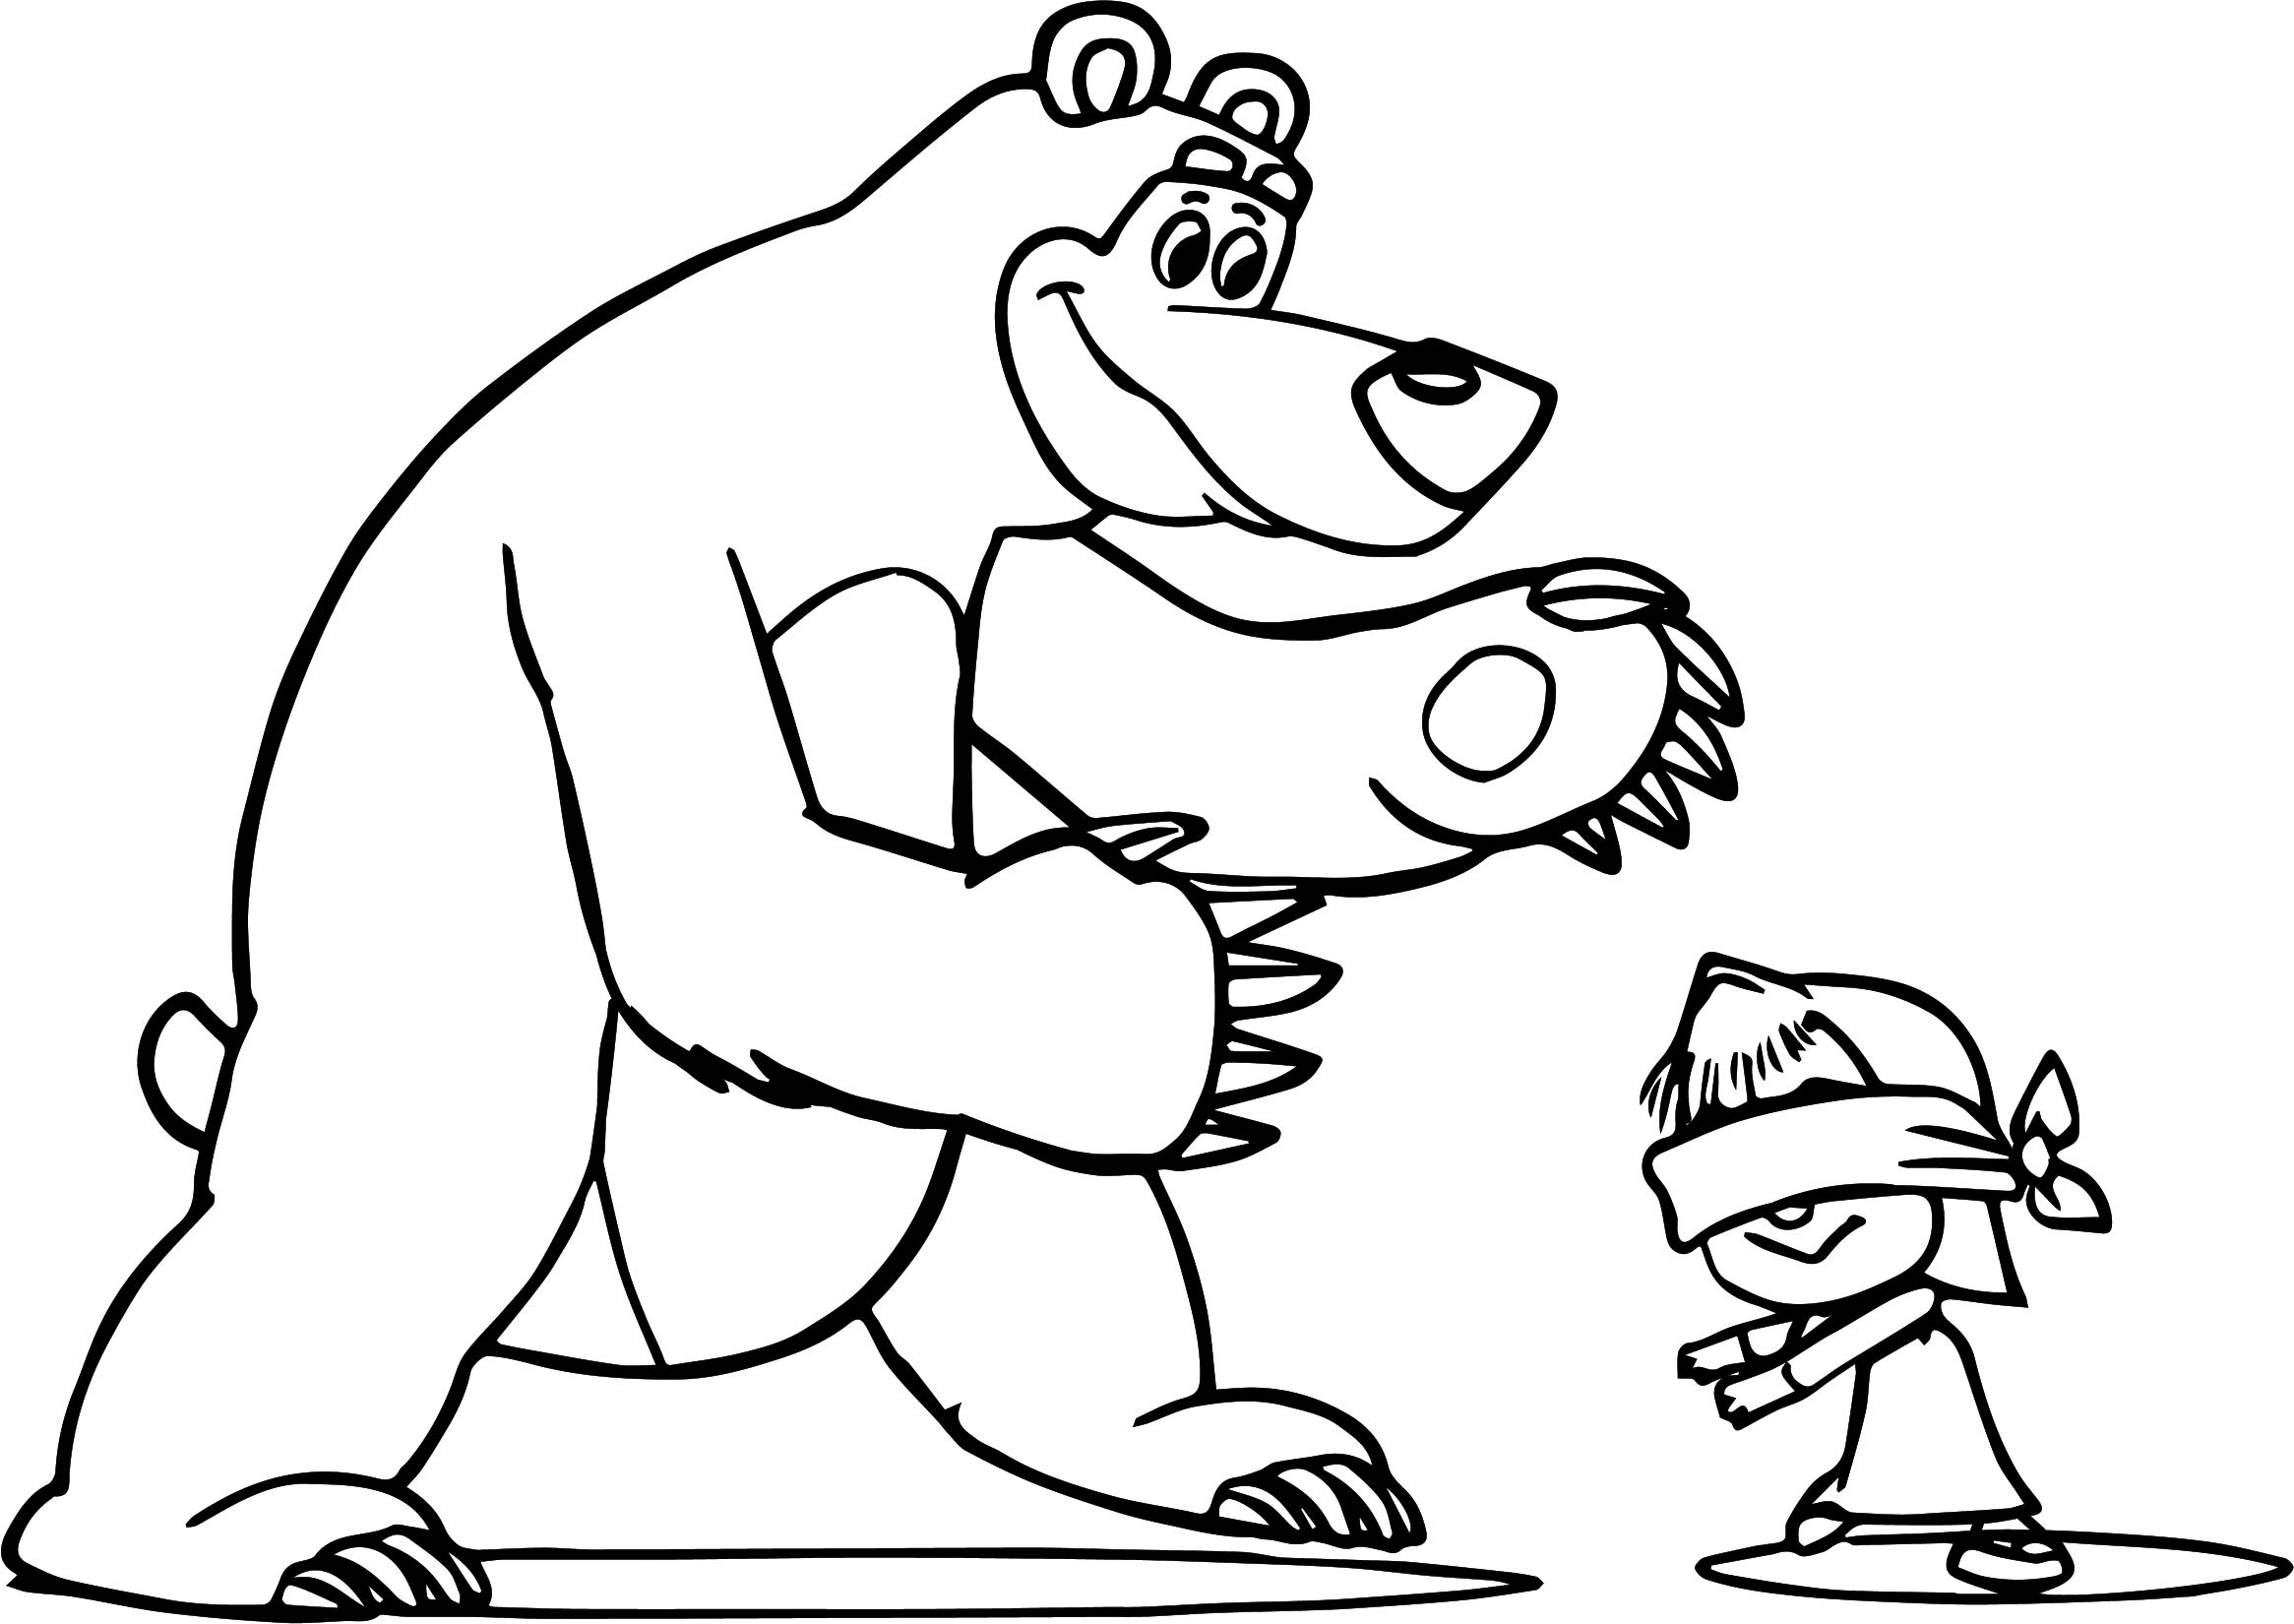 mawa kawa masha and bear hiding coloring page wecoloringpage